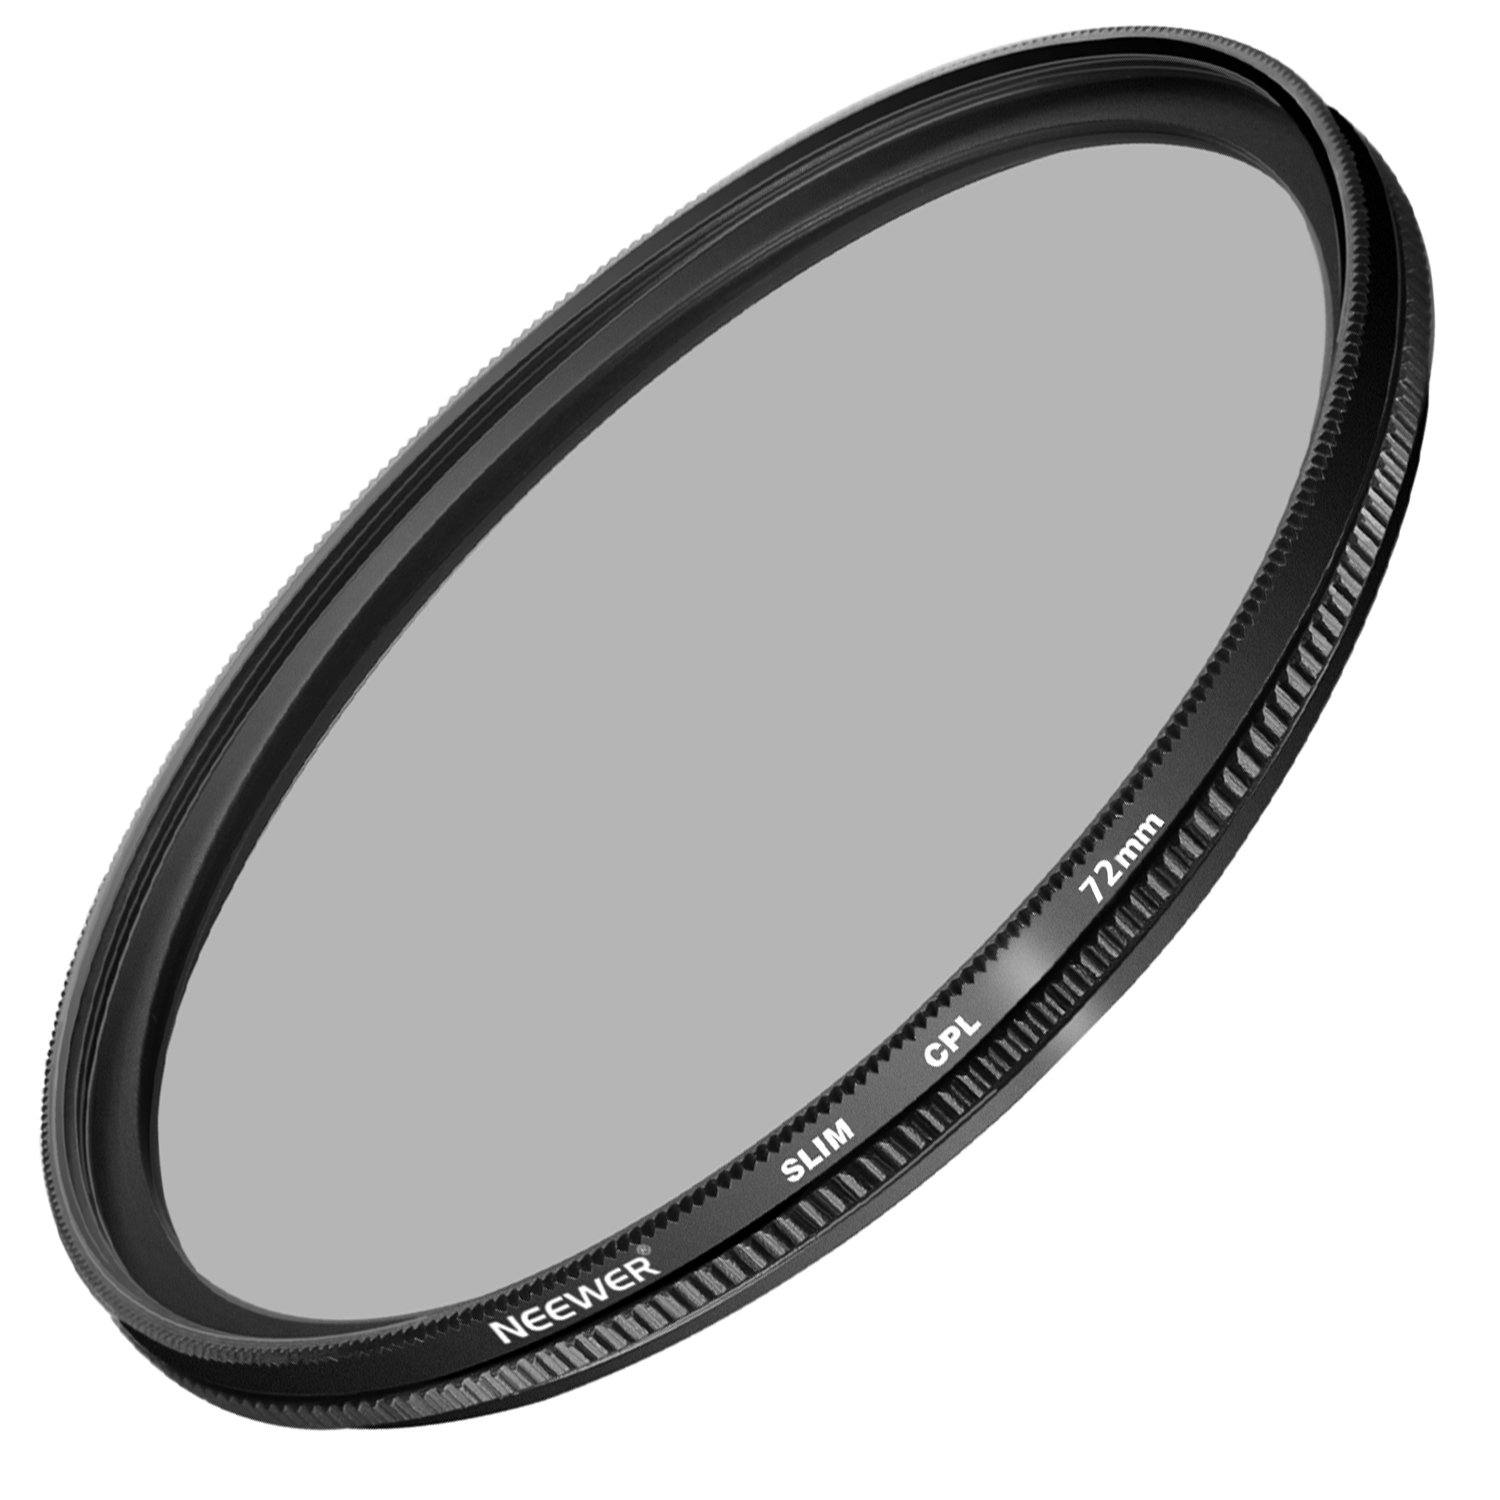 Neewer 72MM Ultra Slim CPL Filter Circular Polarizer Lens Filter for Camera Lens with 72MM Filter Thread Size, Made of Optical Glass and Aluminum Alloy Frame 10090428